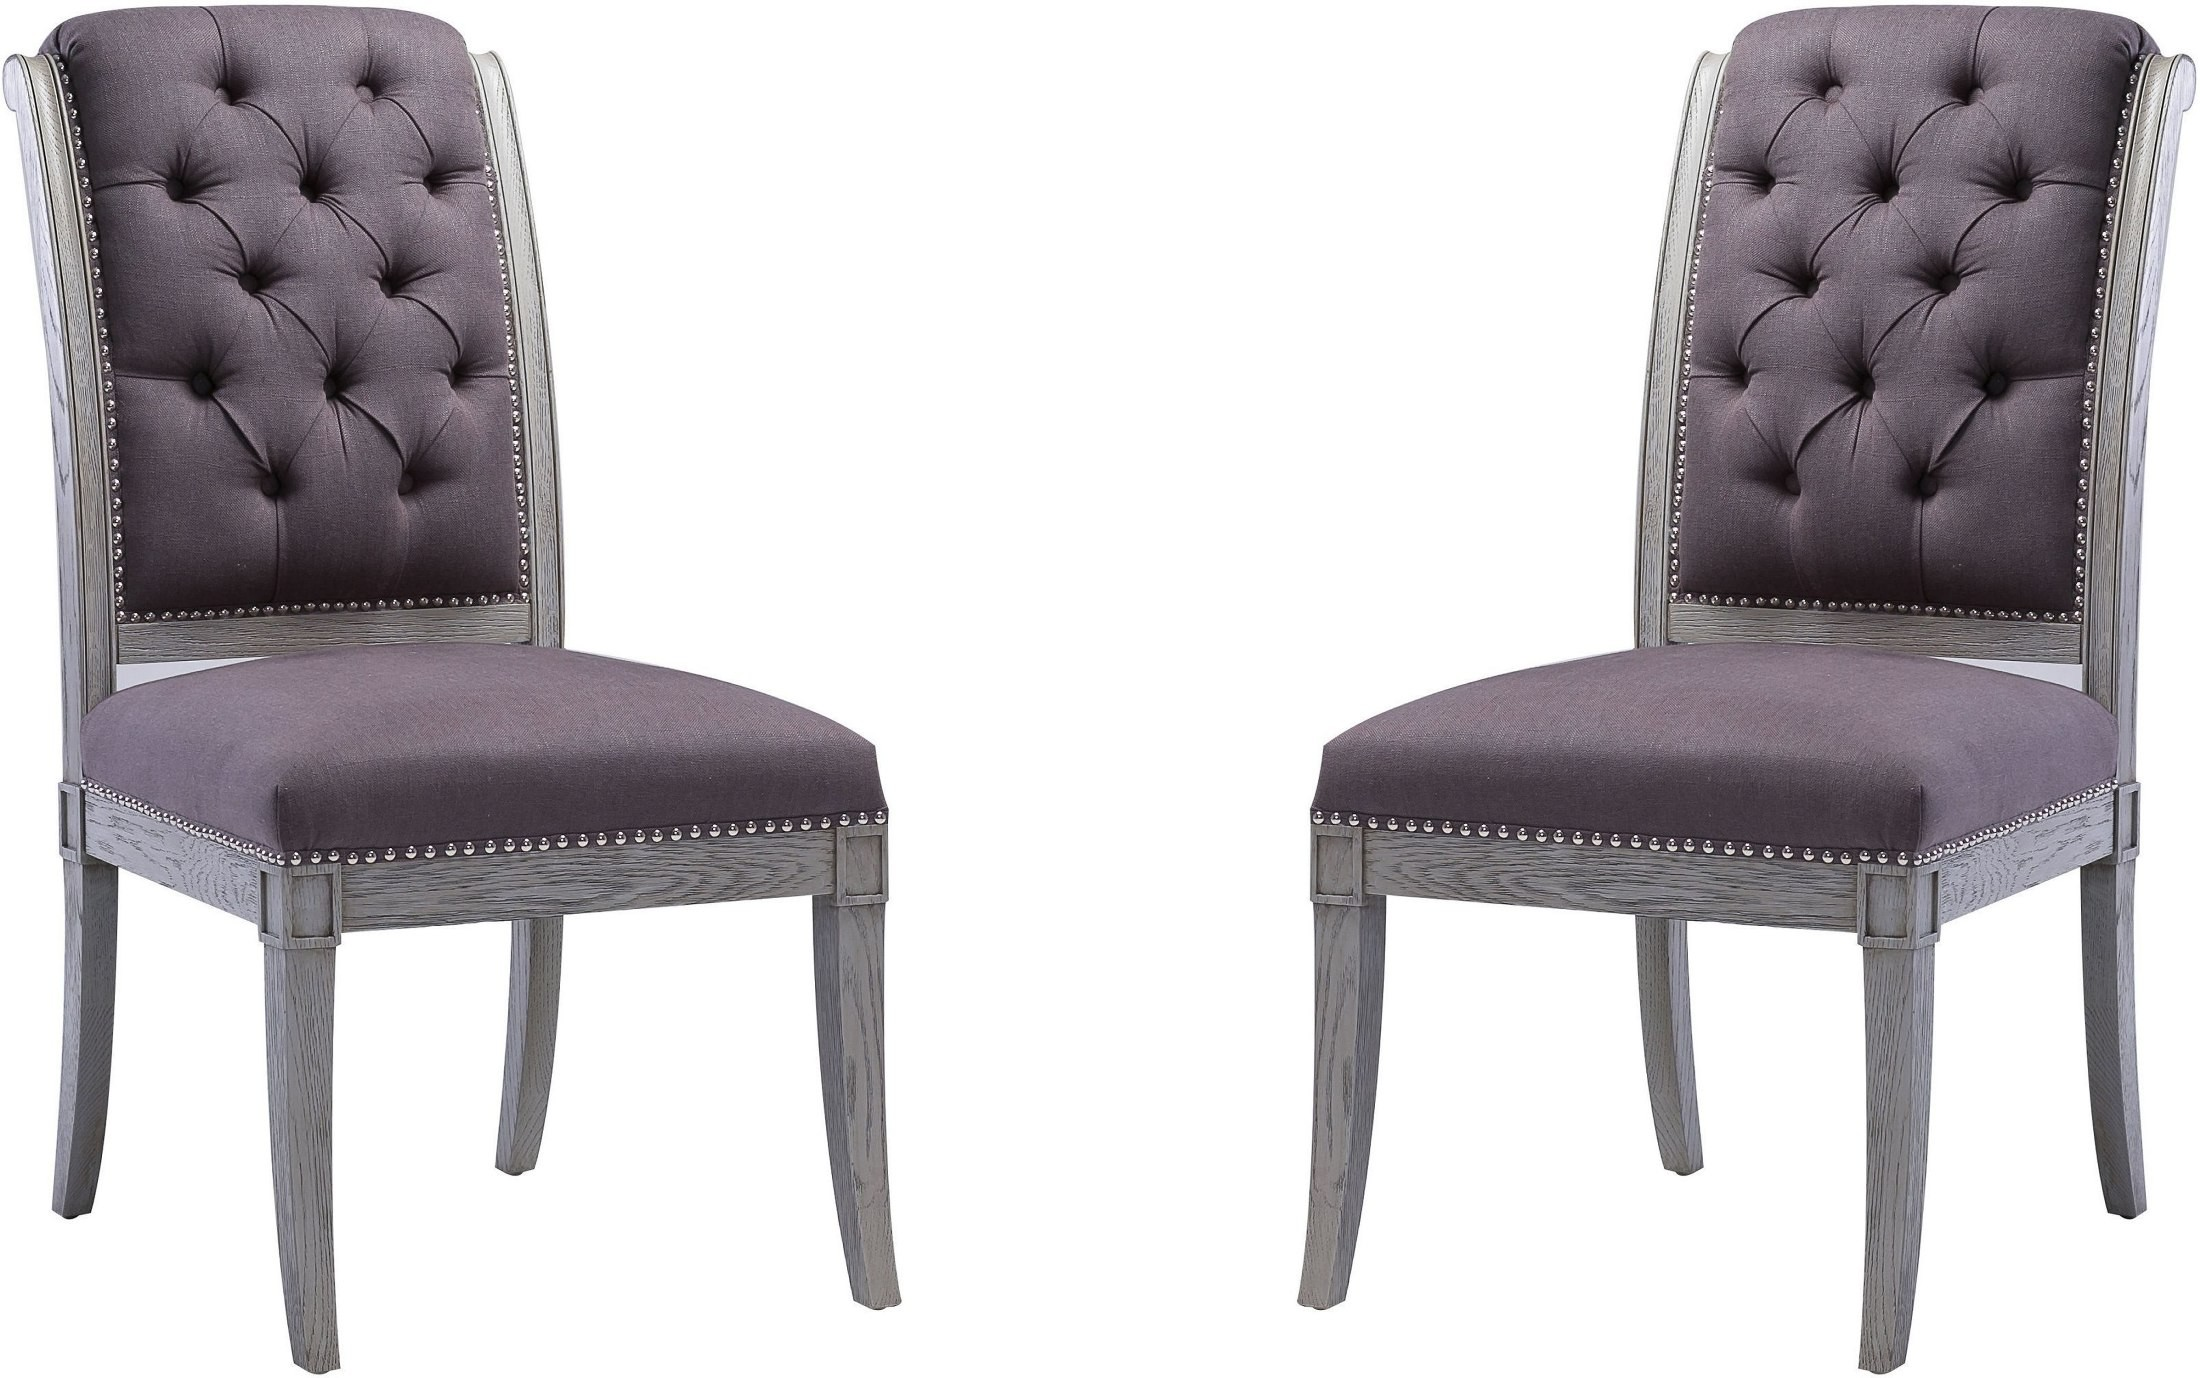 Grey Side Chair Addington Grey Linen Side Chair Set Of 2 From Tov